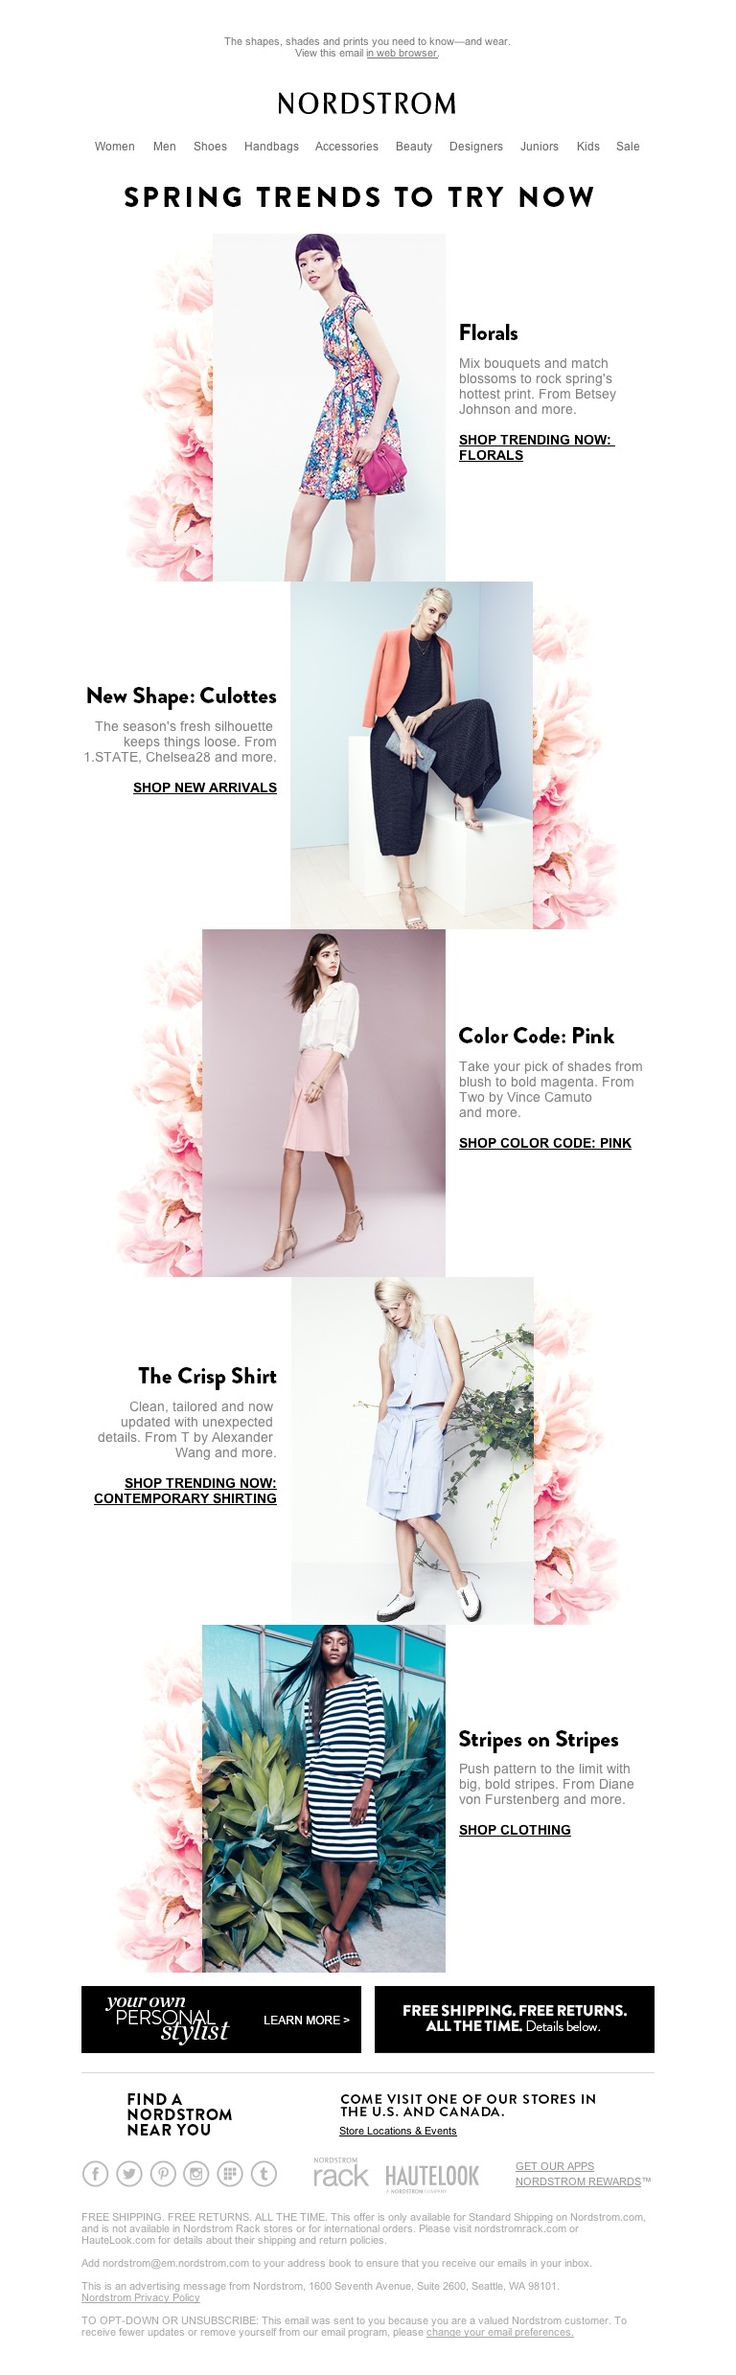 Nordstrom - Spring Trends to Try Now